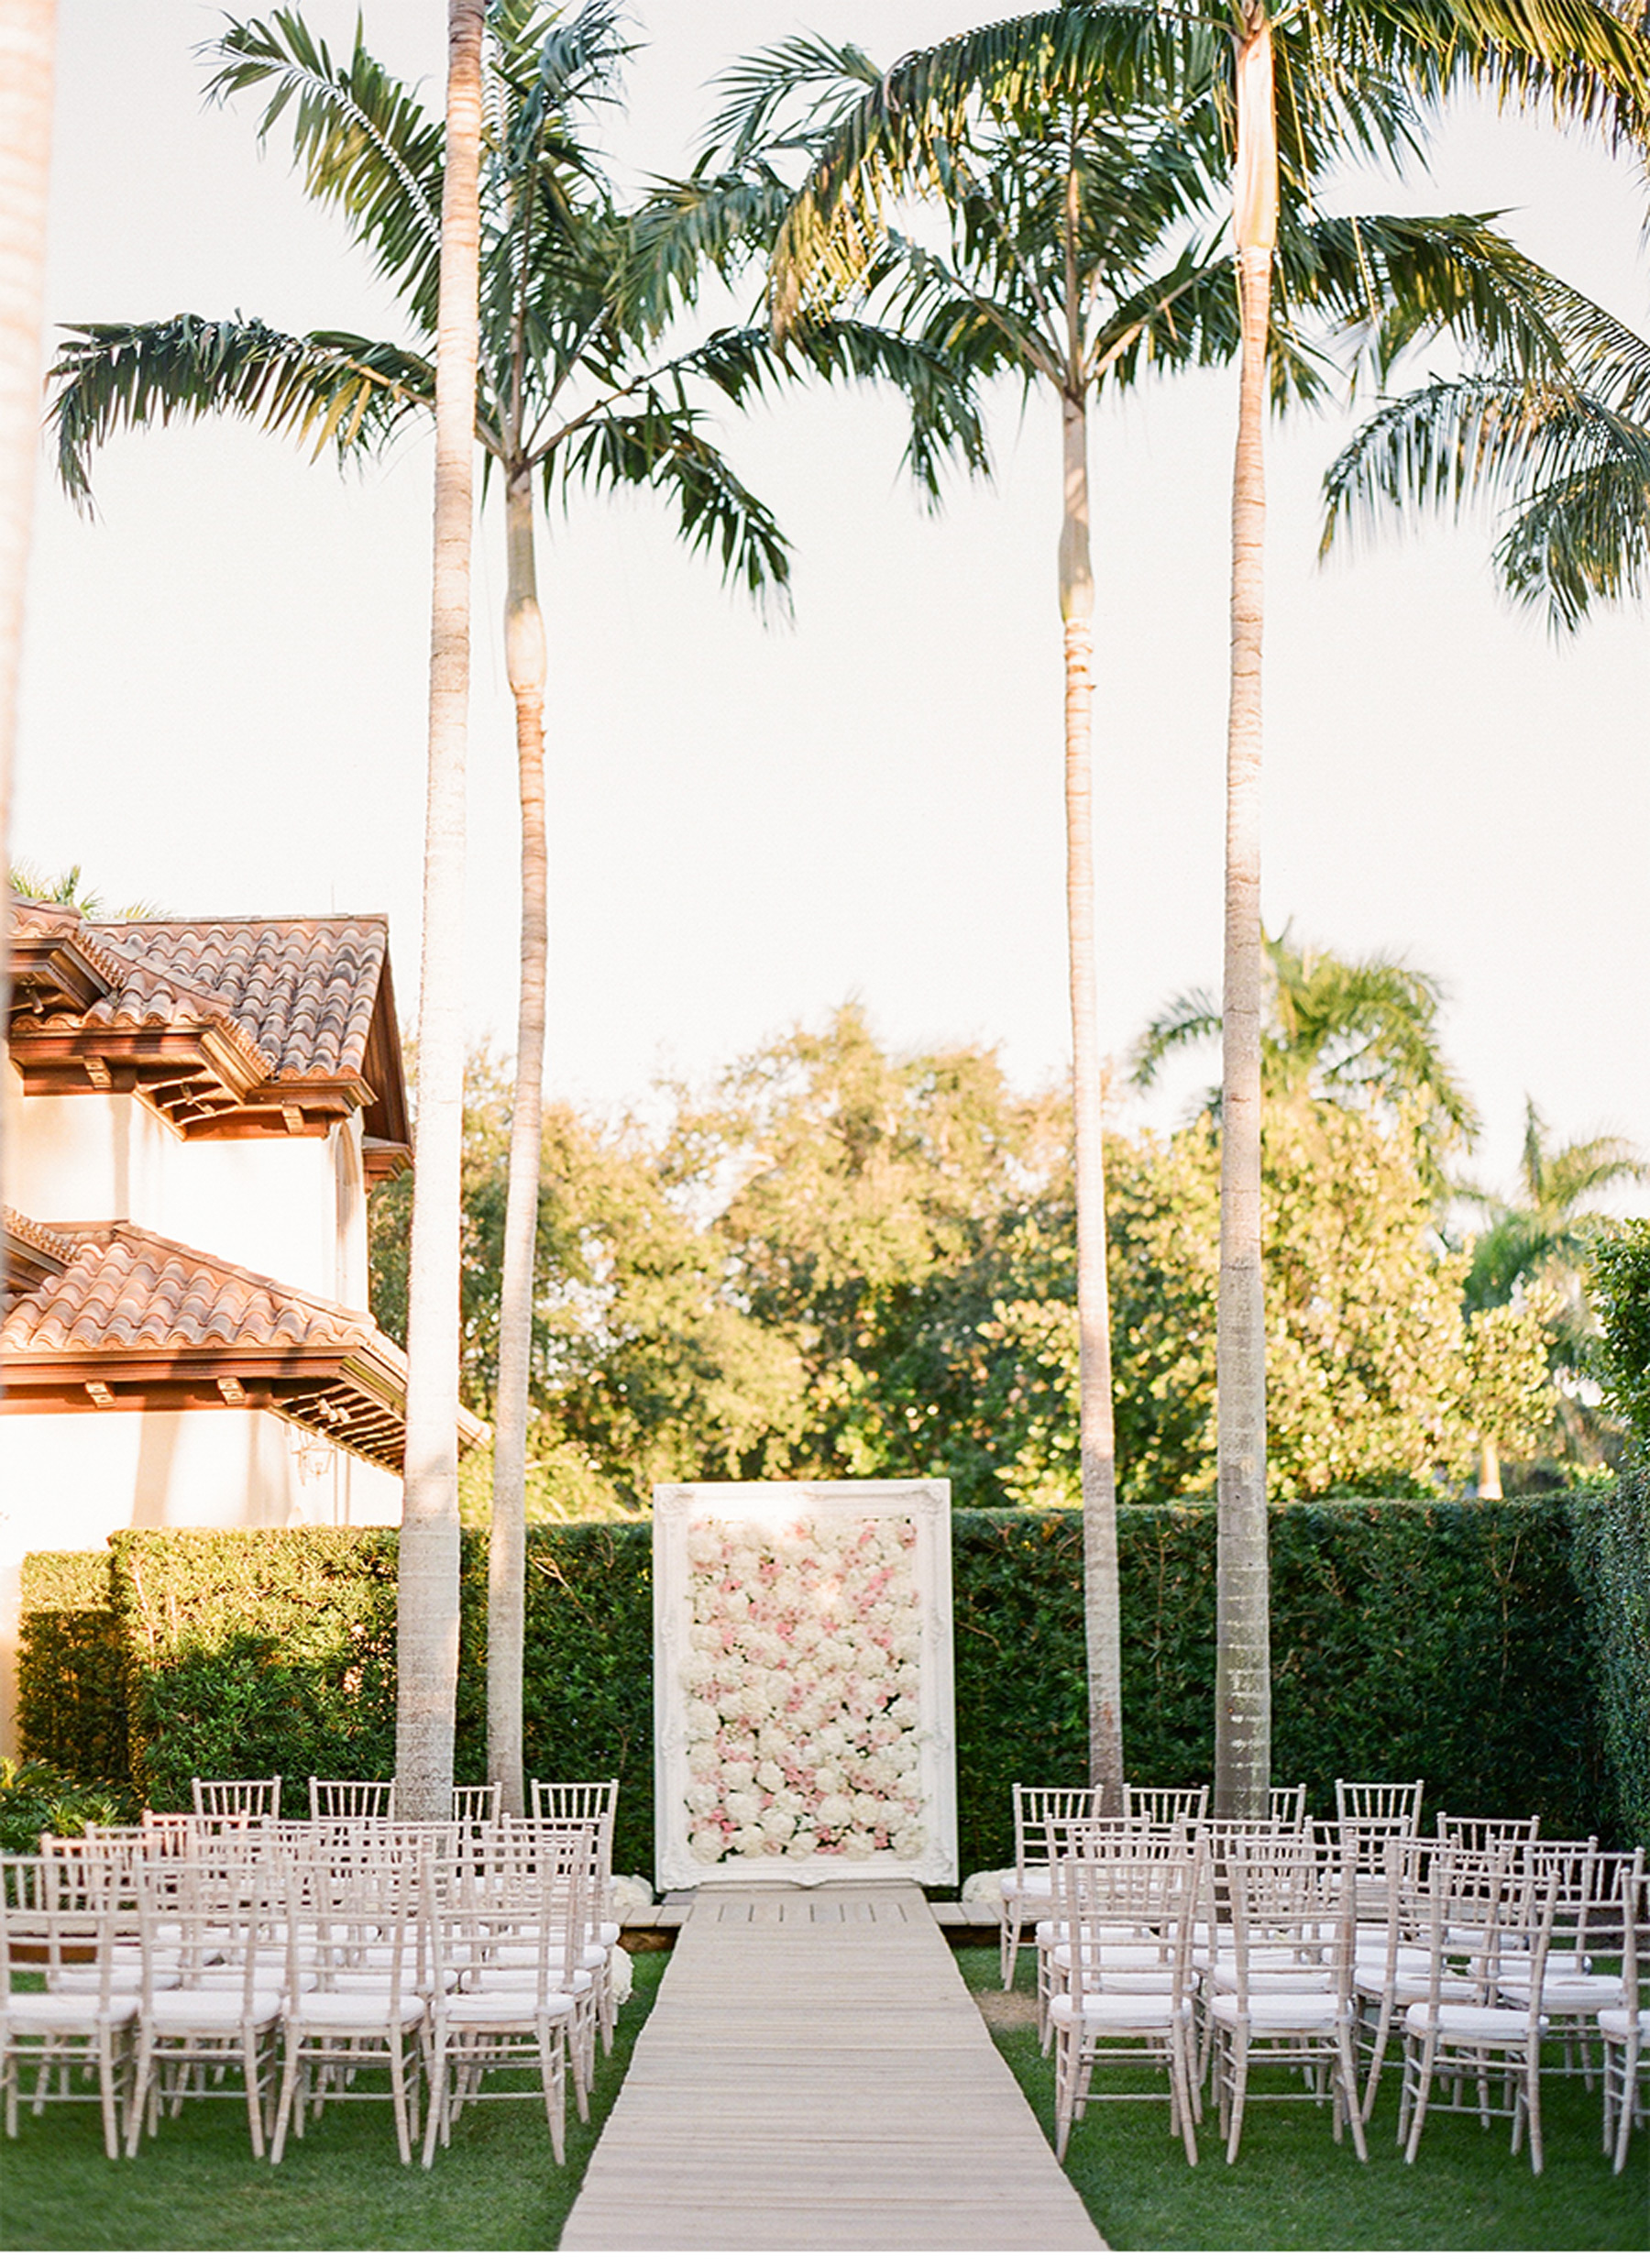 Our Muse - Green and Pink Wedding - Be inspired by Susan and Owen's green-and-pink wedding in Naples, Florida - wedding, ceci new york